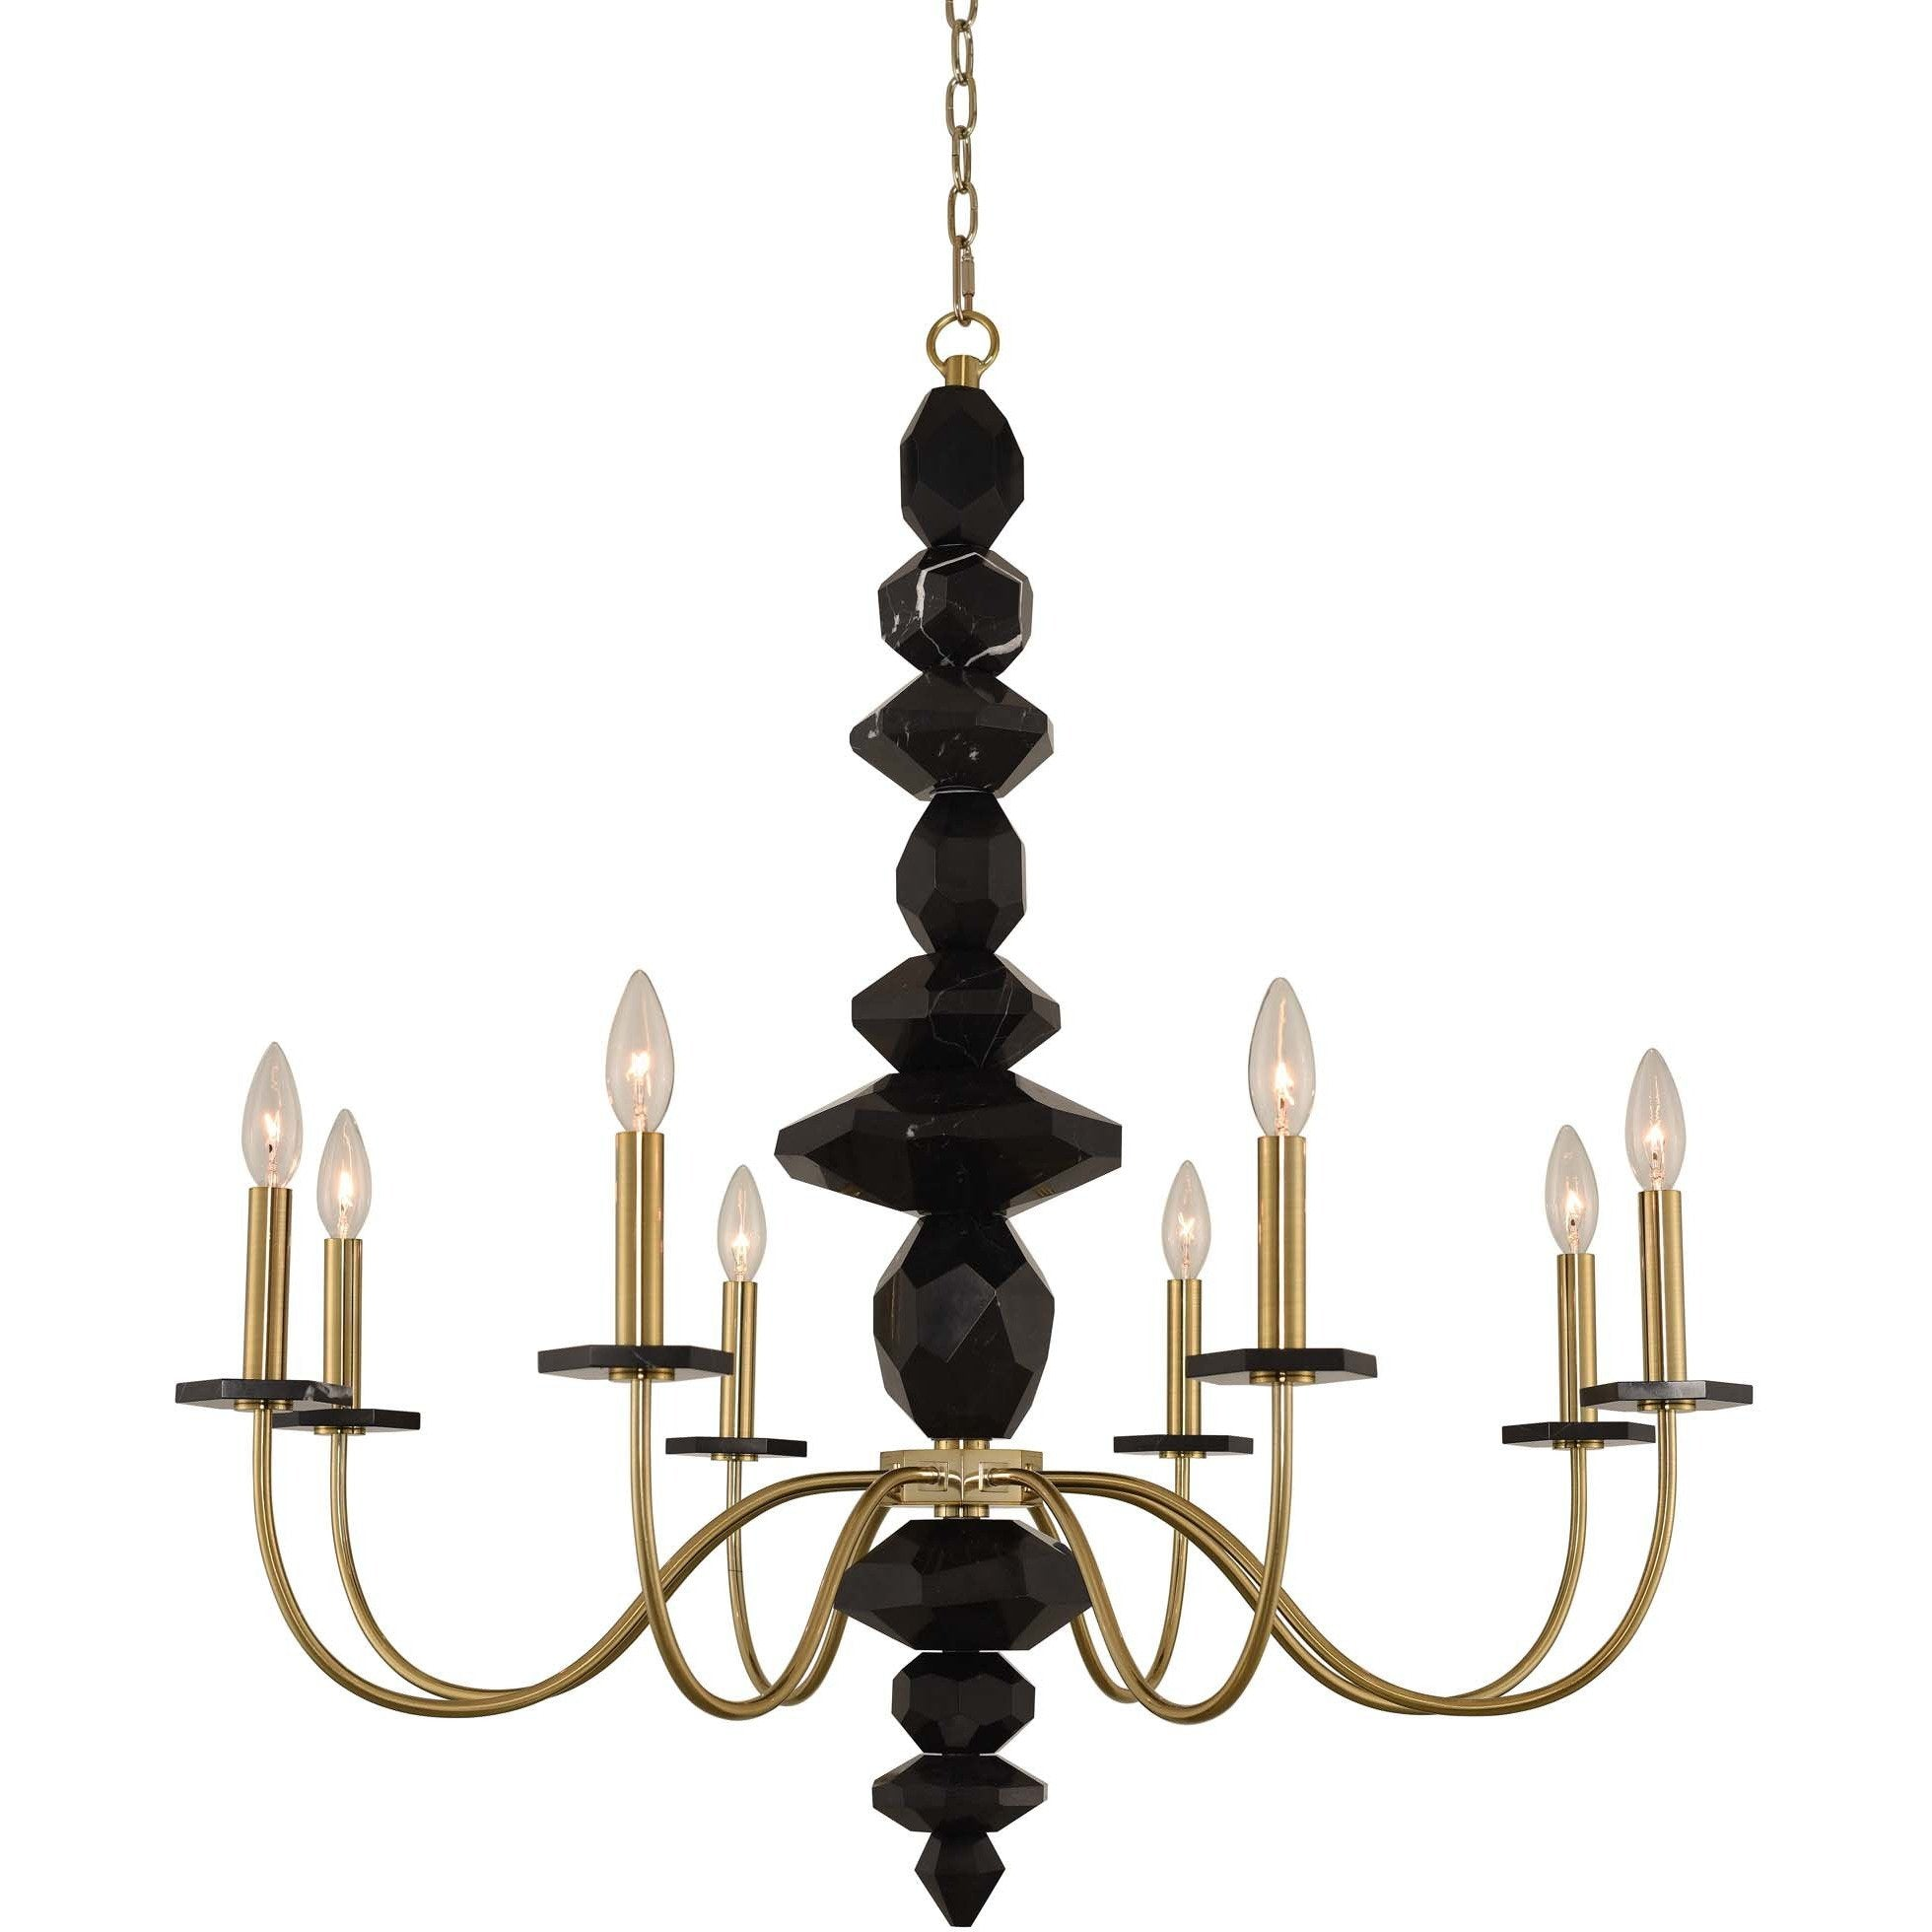 Allegri by Kalco Lighting Chandeliers Brushed Brass / N/A Piedra 8 Light Chandelier From Allegri by Kalco Lighting 031551